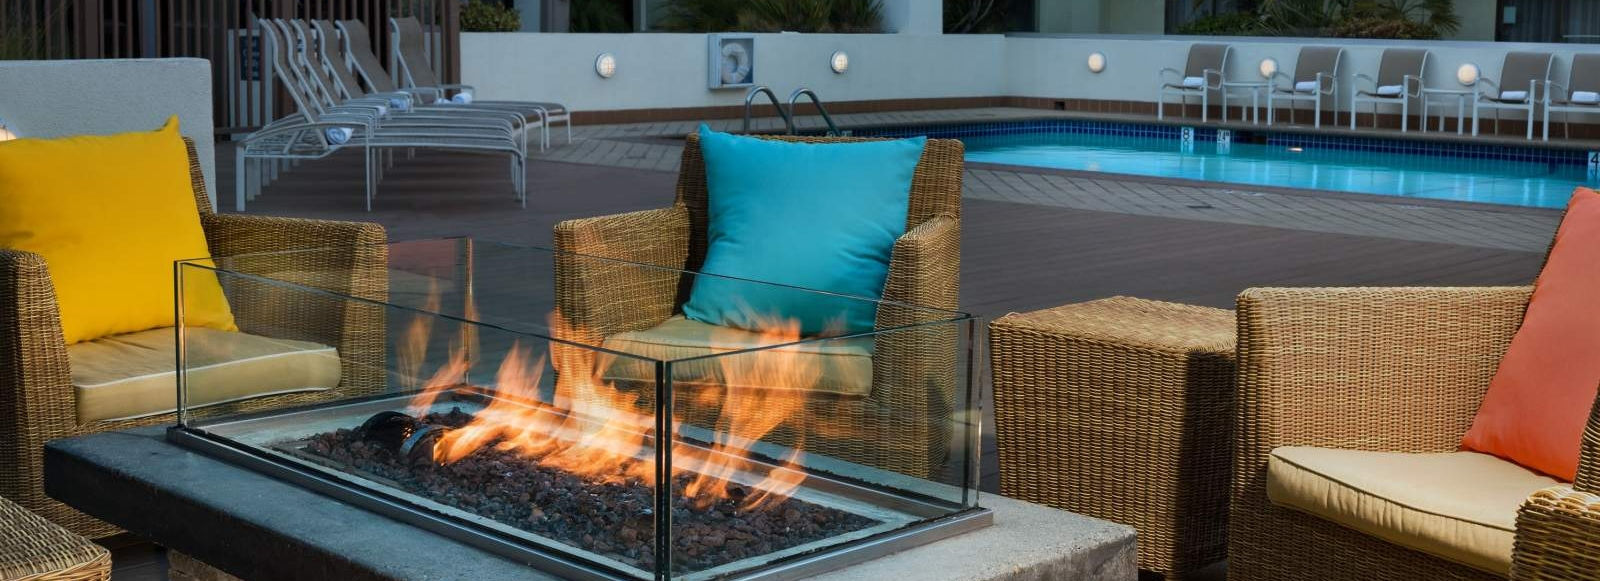 Sheraton Fisherman's Wharf Hotel - Outdoor Lobby with Fire Pits